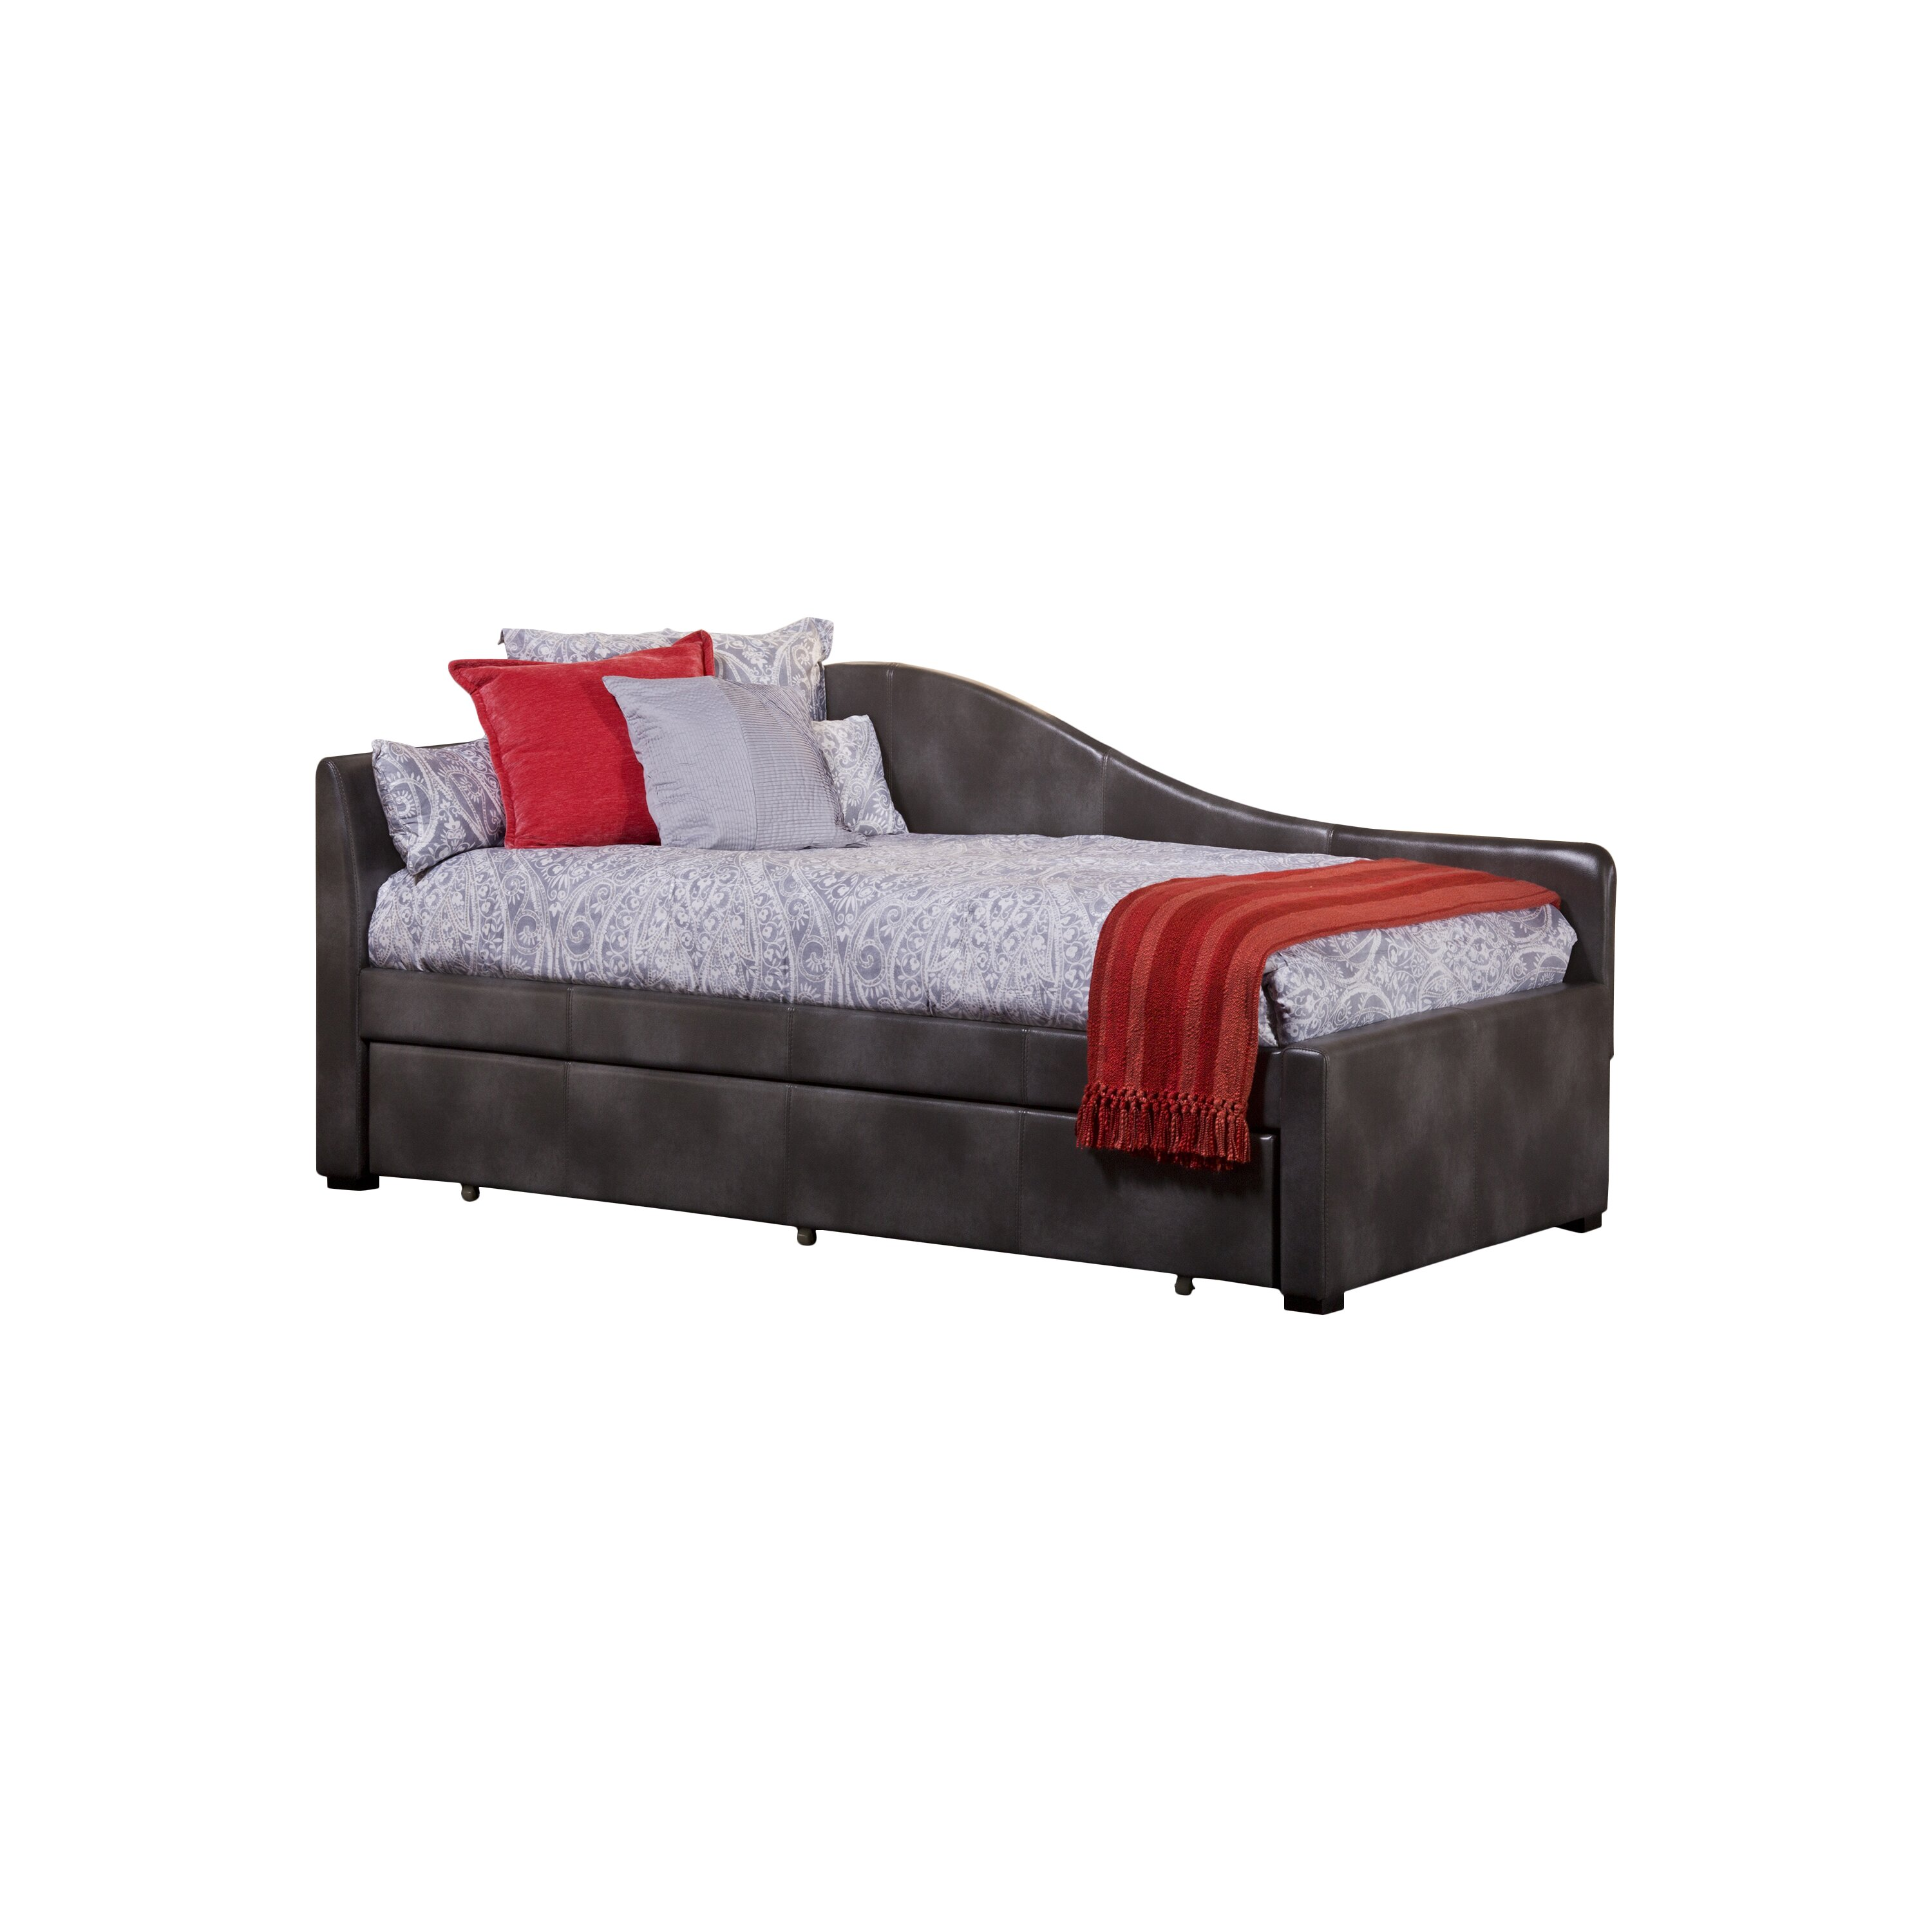 Hillsdale Winterberry Daybed & Reviews